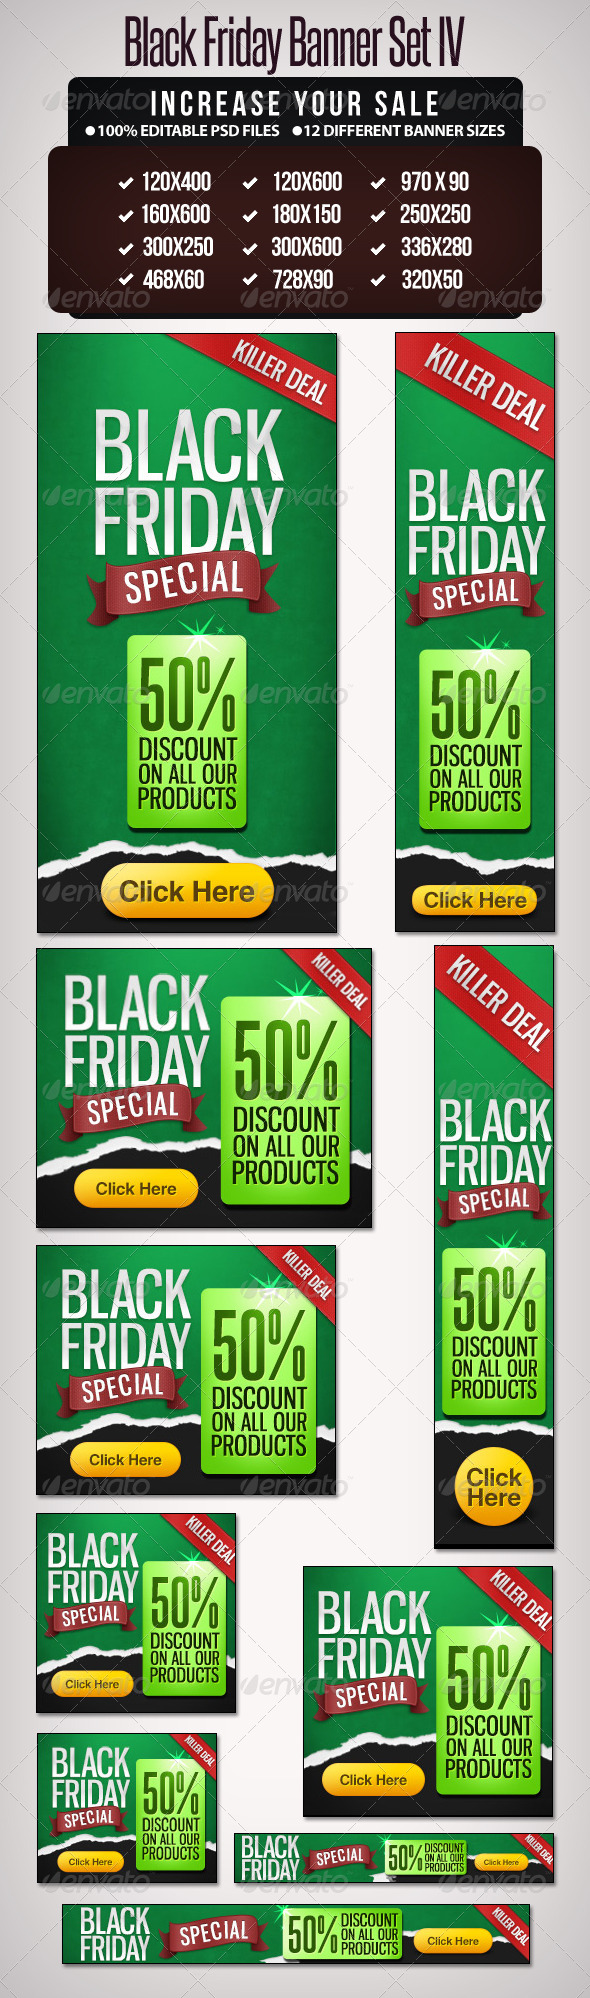 GraphicRiver Black Friday Banner Set 4 6238580